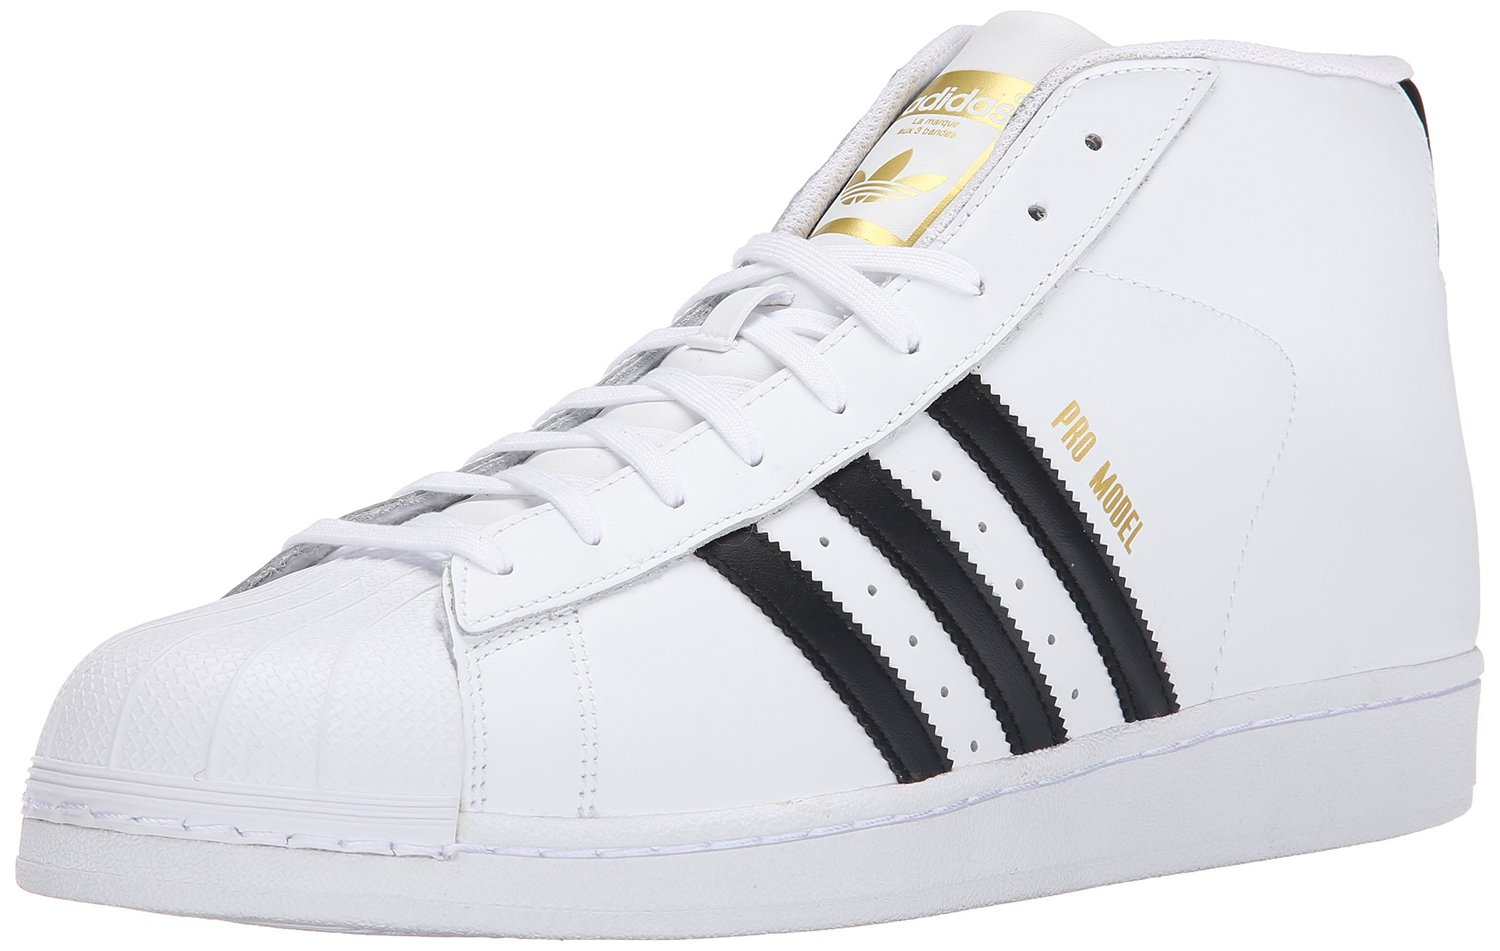 Cheap Adidas Shoe Model Number, find Adidas Shoe Model